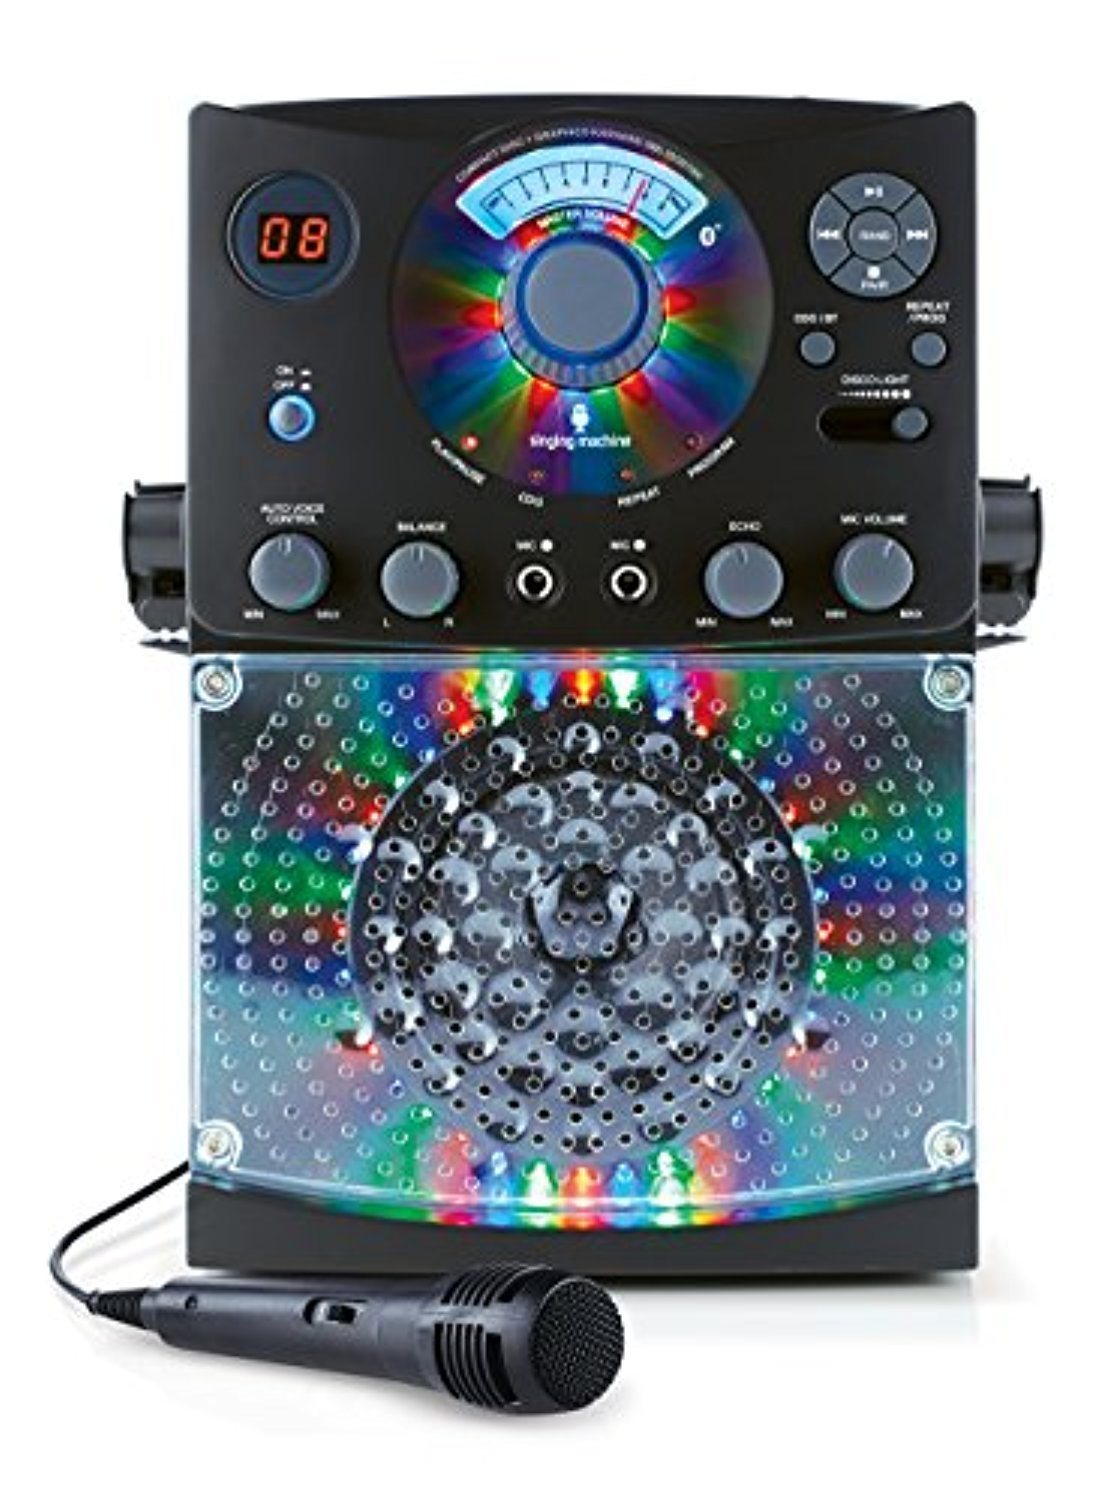 Bundle Includes 2 Items - Singing Machine SML385BTBK Top Loading CDG Karaoke System with Bluetooth, Sound and Disco Light Show (Black) and Singing Machine SMM-205 Unidirectional Dynamic Microphone by Singing Machine and Singing Machine (Image #6)